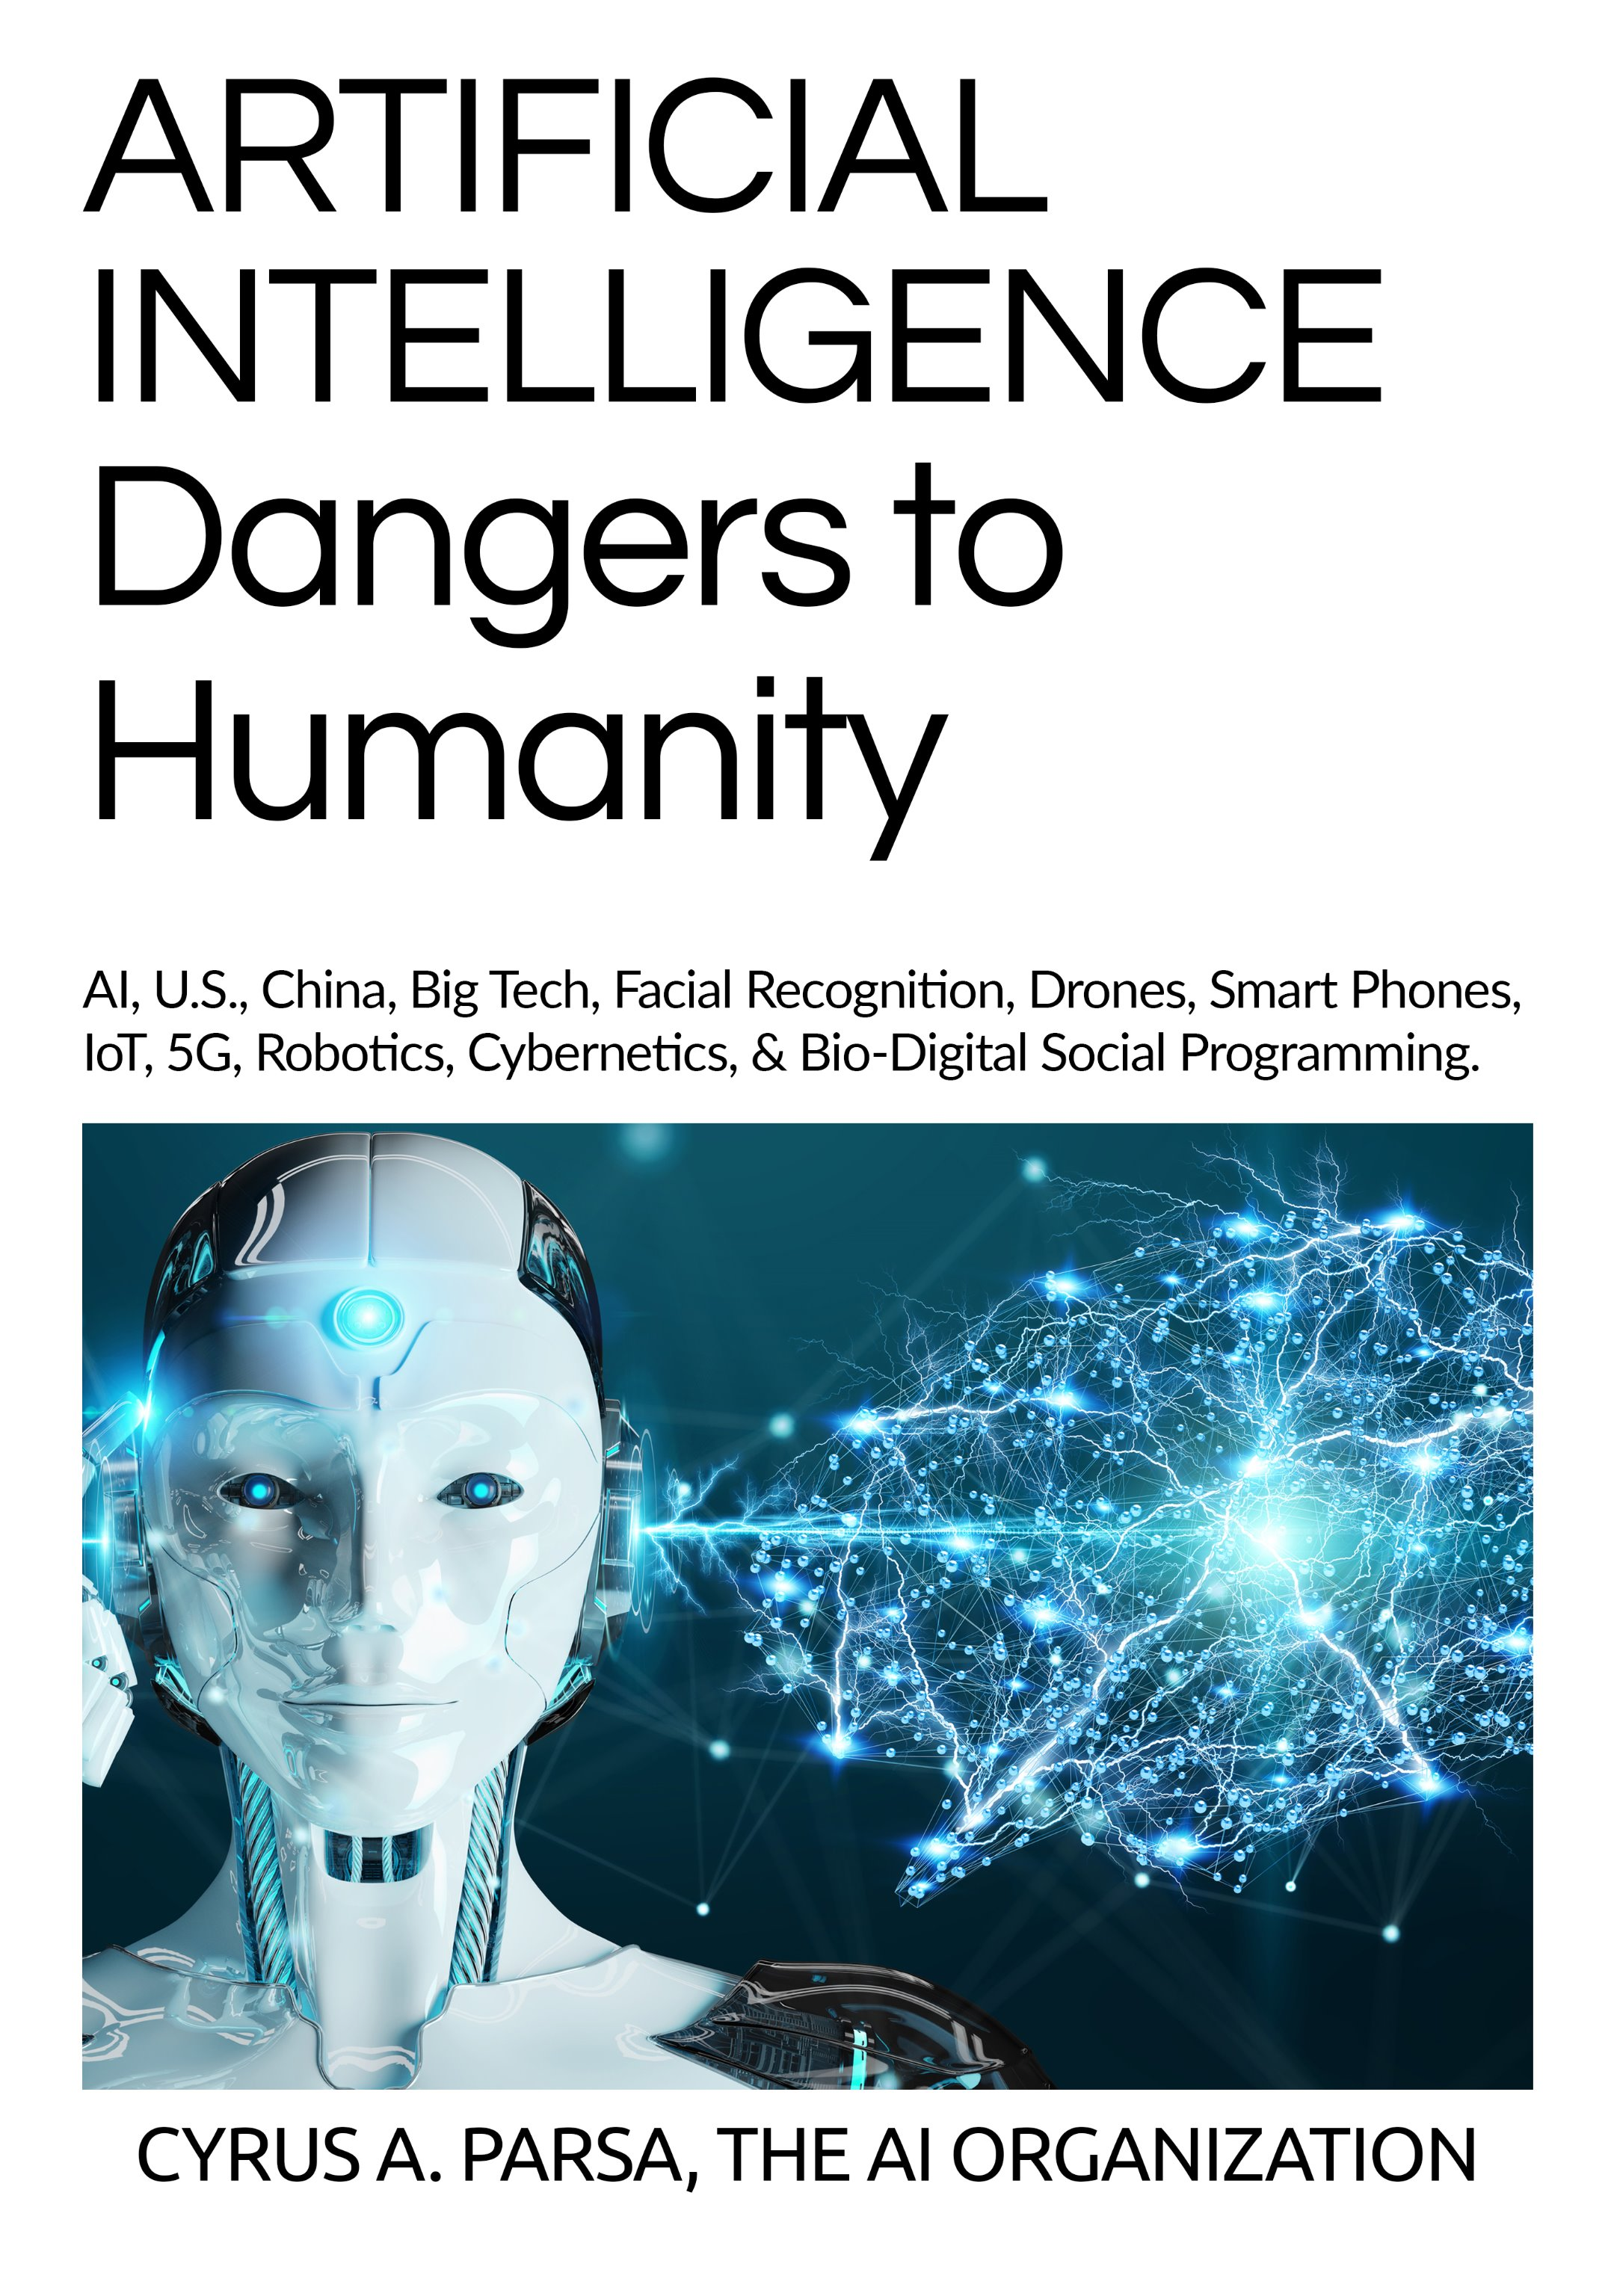 ARTIFICIAL INTELLIGENCE DANGERS TO HUMANITY - Via RedPill78